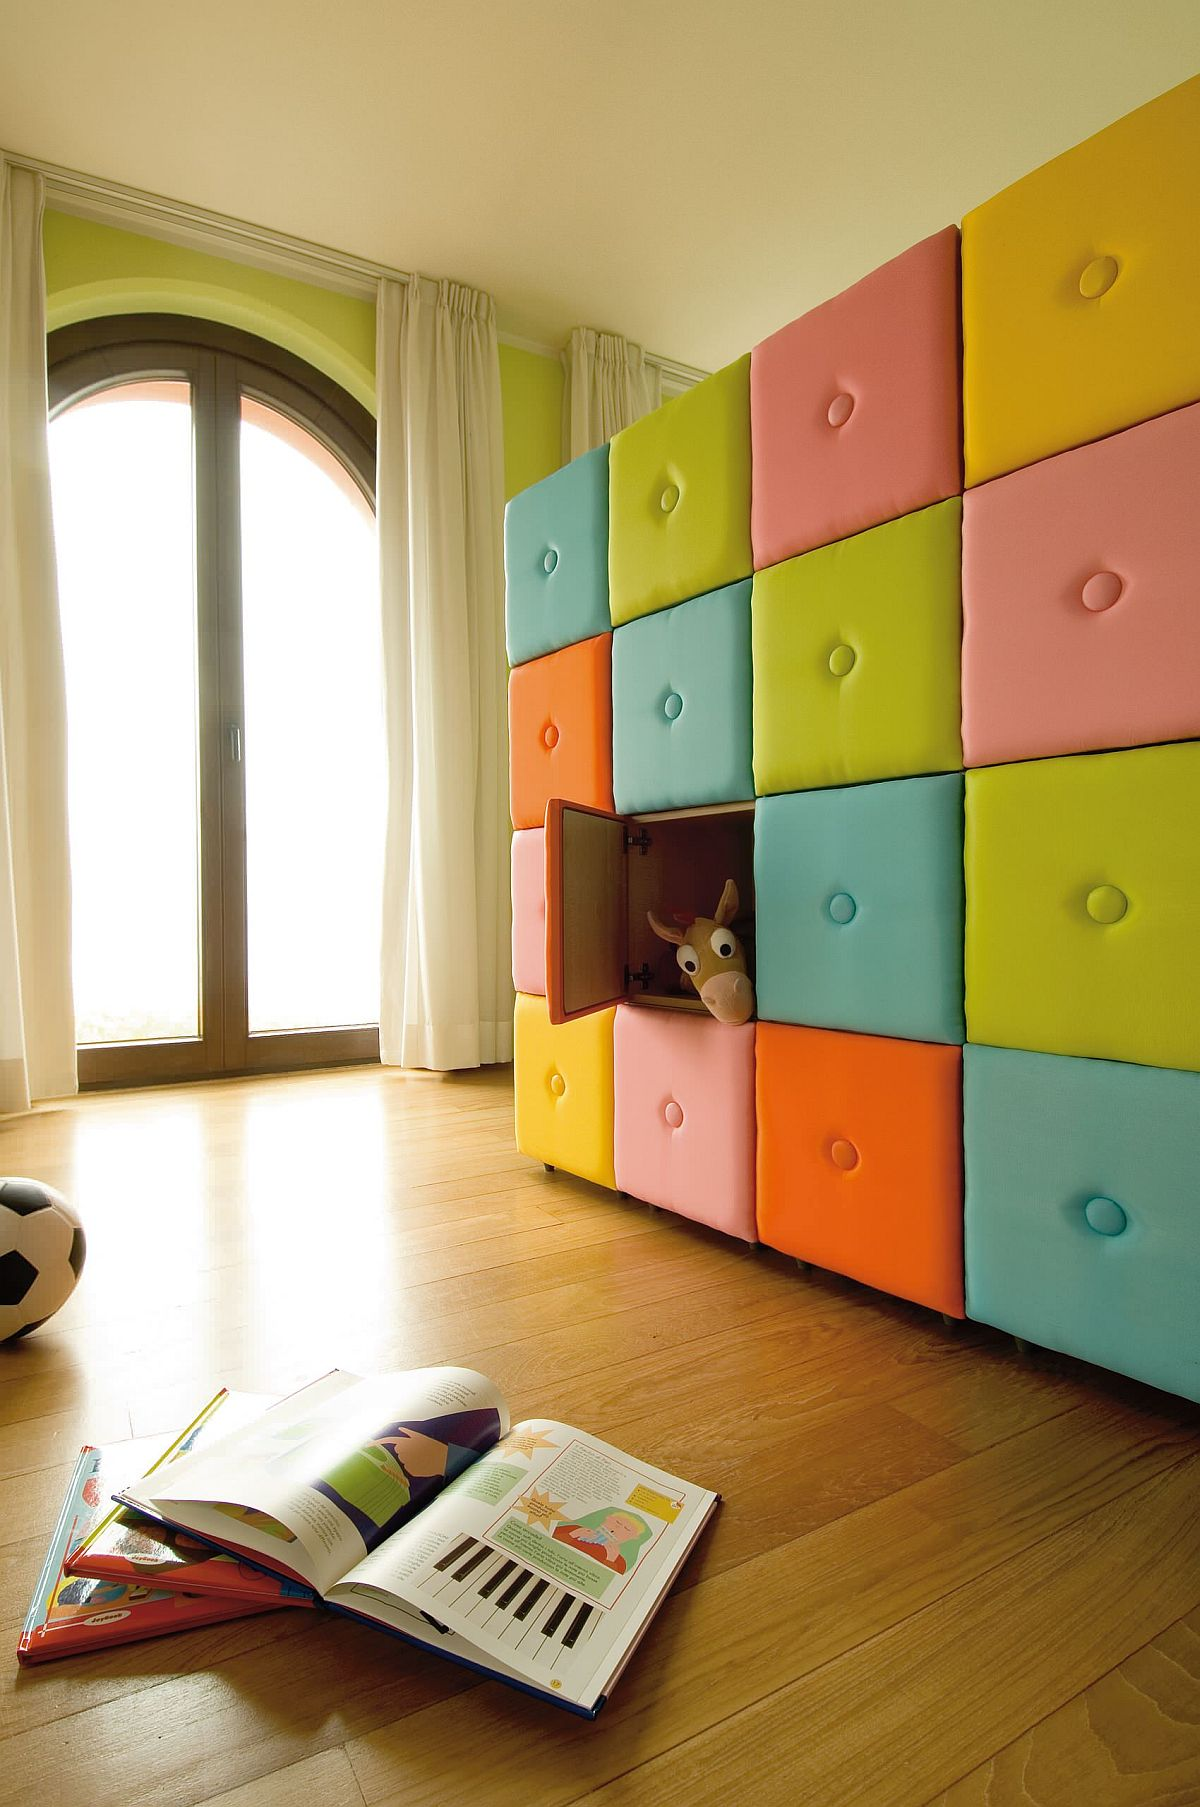 Colorful and creative wall of storage cubes in the kids' room